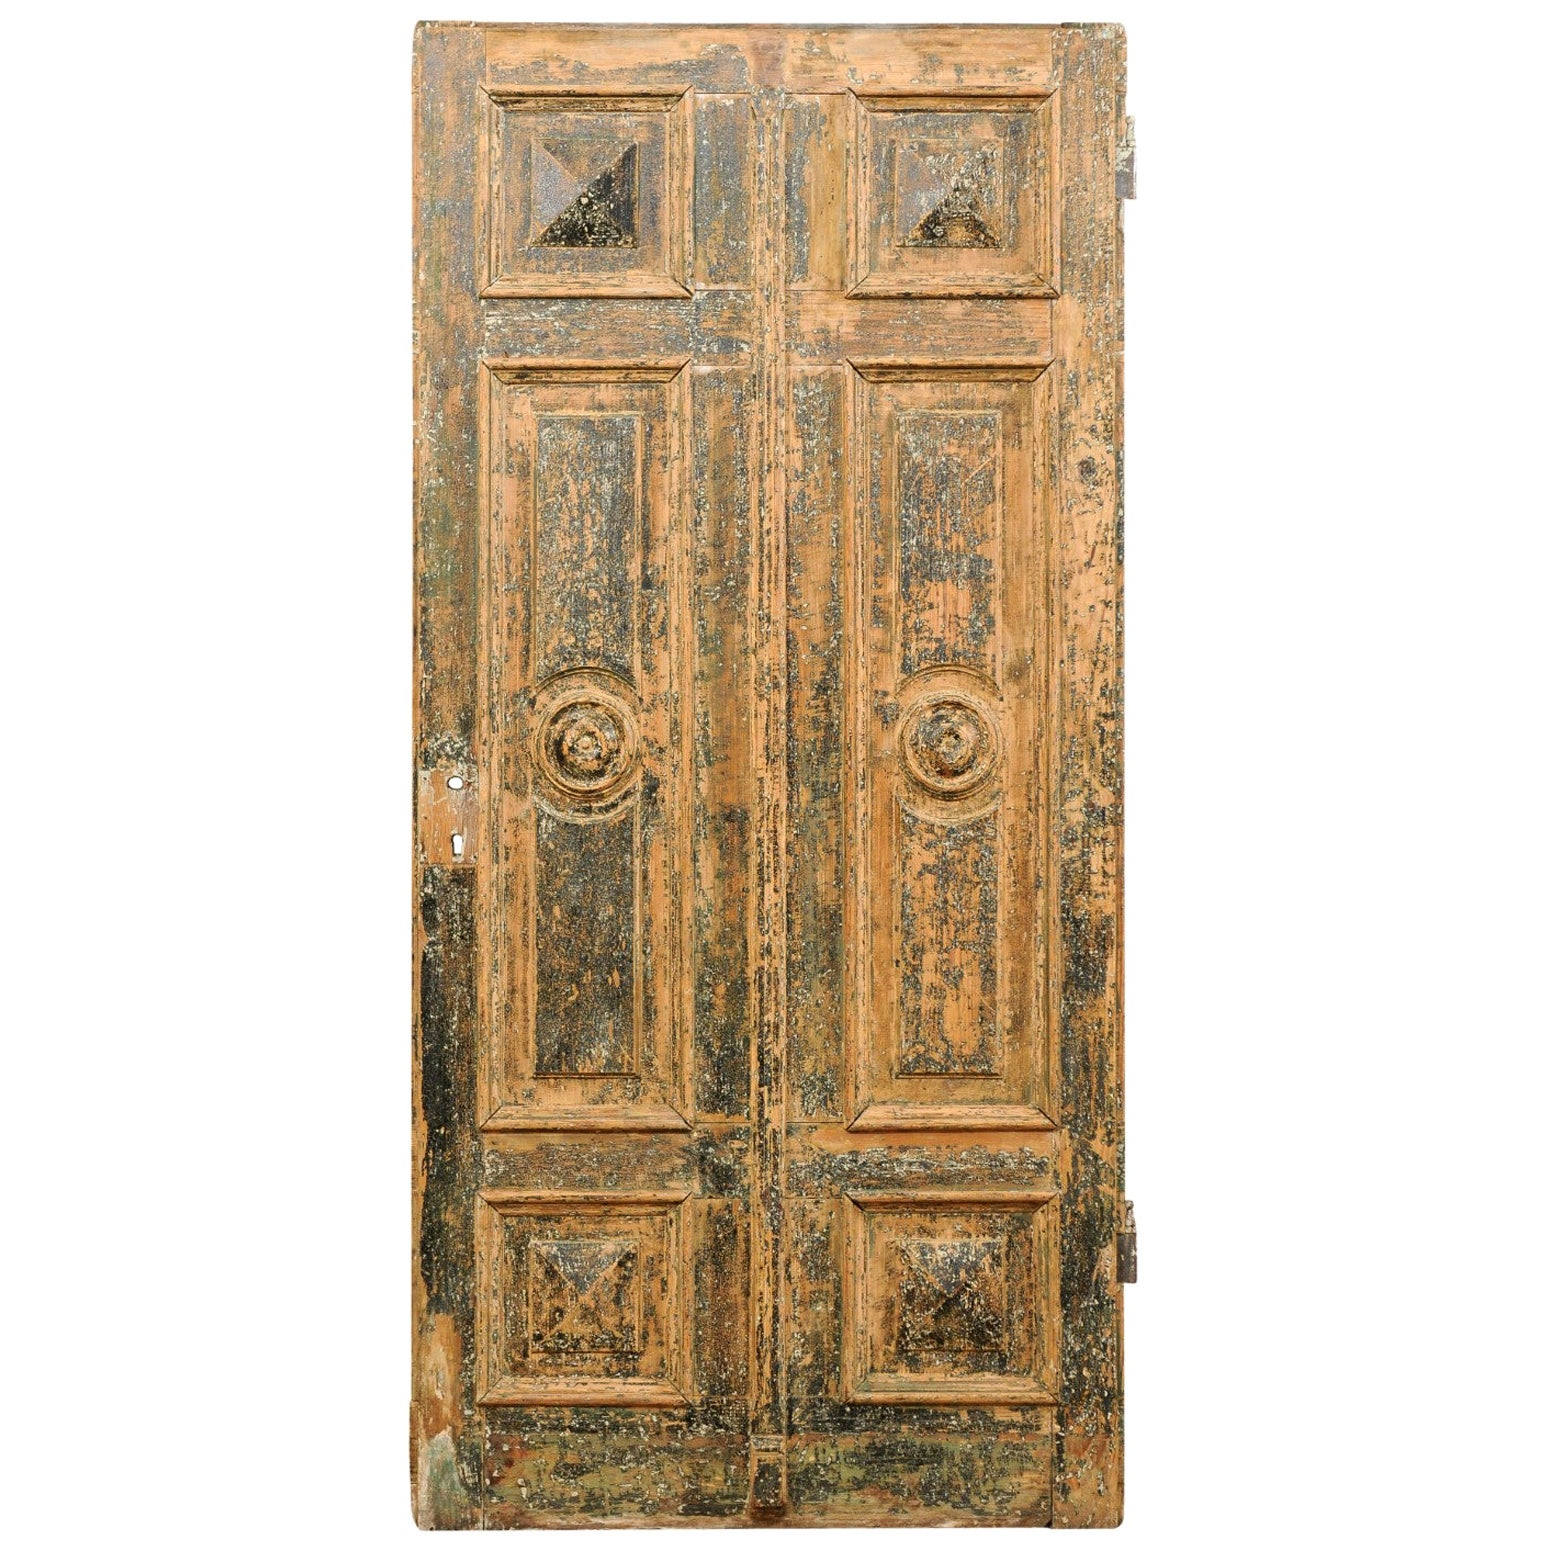 Spanish Single Nicely Carved Raised-Panel Wood Door, Early 19th Century